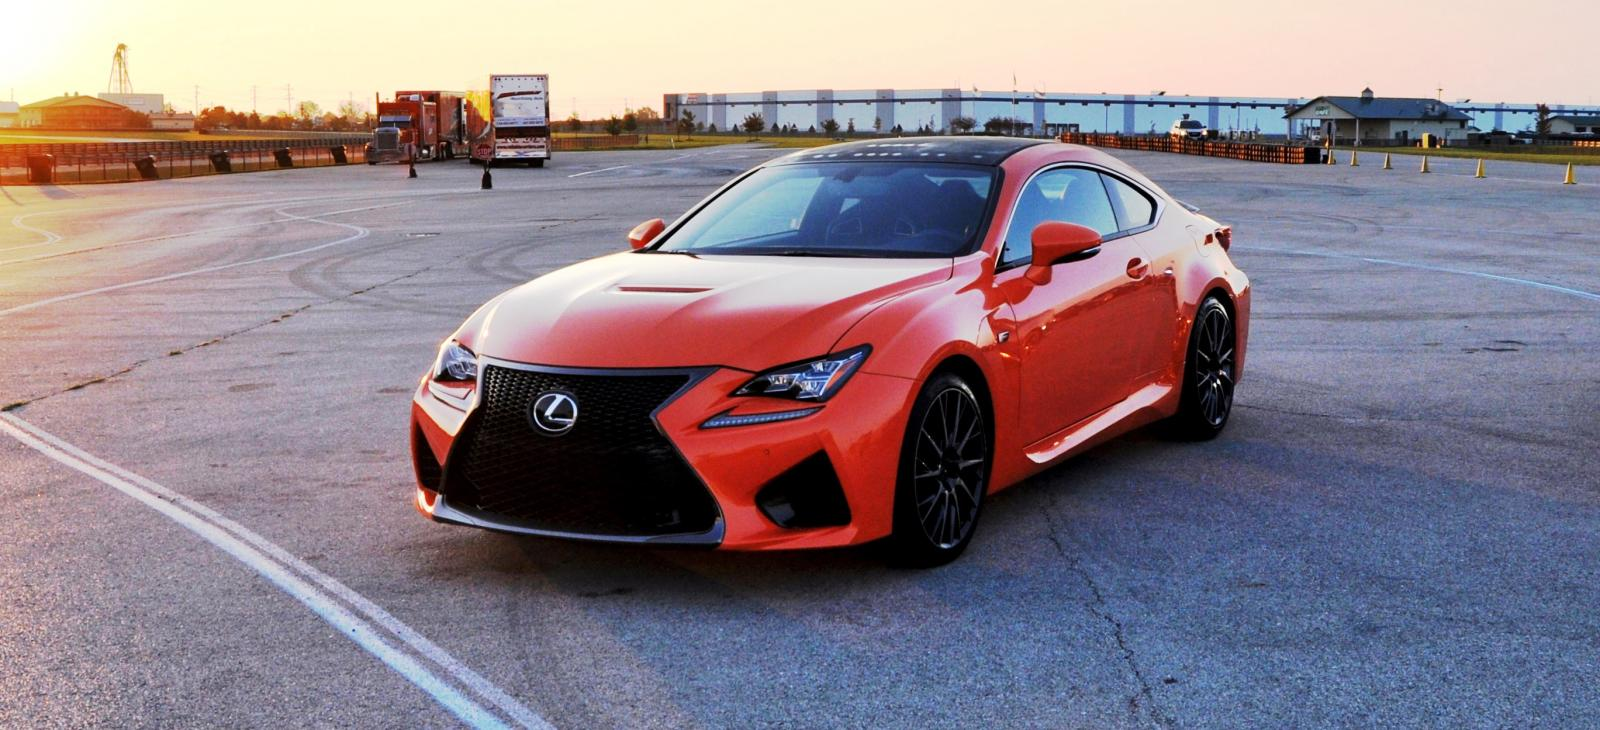 track drive review 2015 lexus rcf is roaring delight around autobahn country club 2. Black Bedroom Furniture Sets. Home Design Ideas